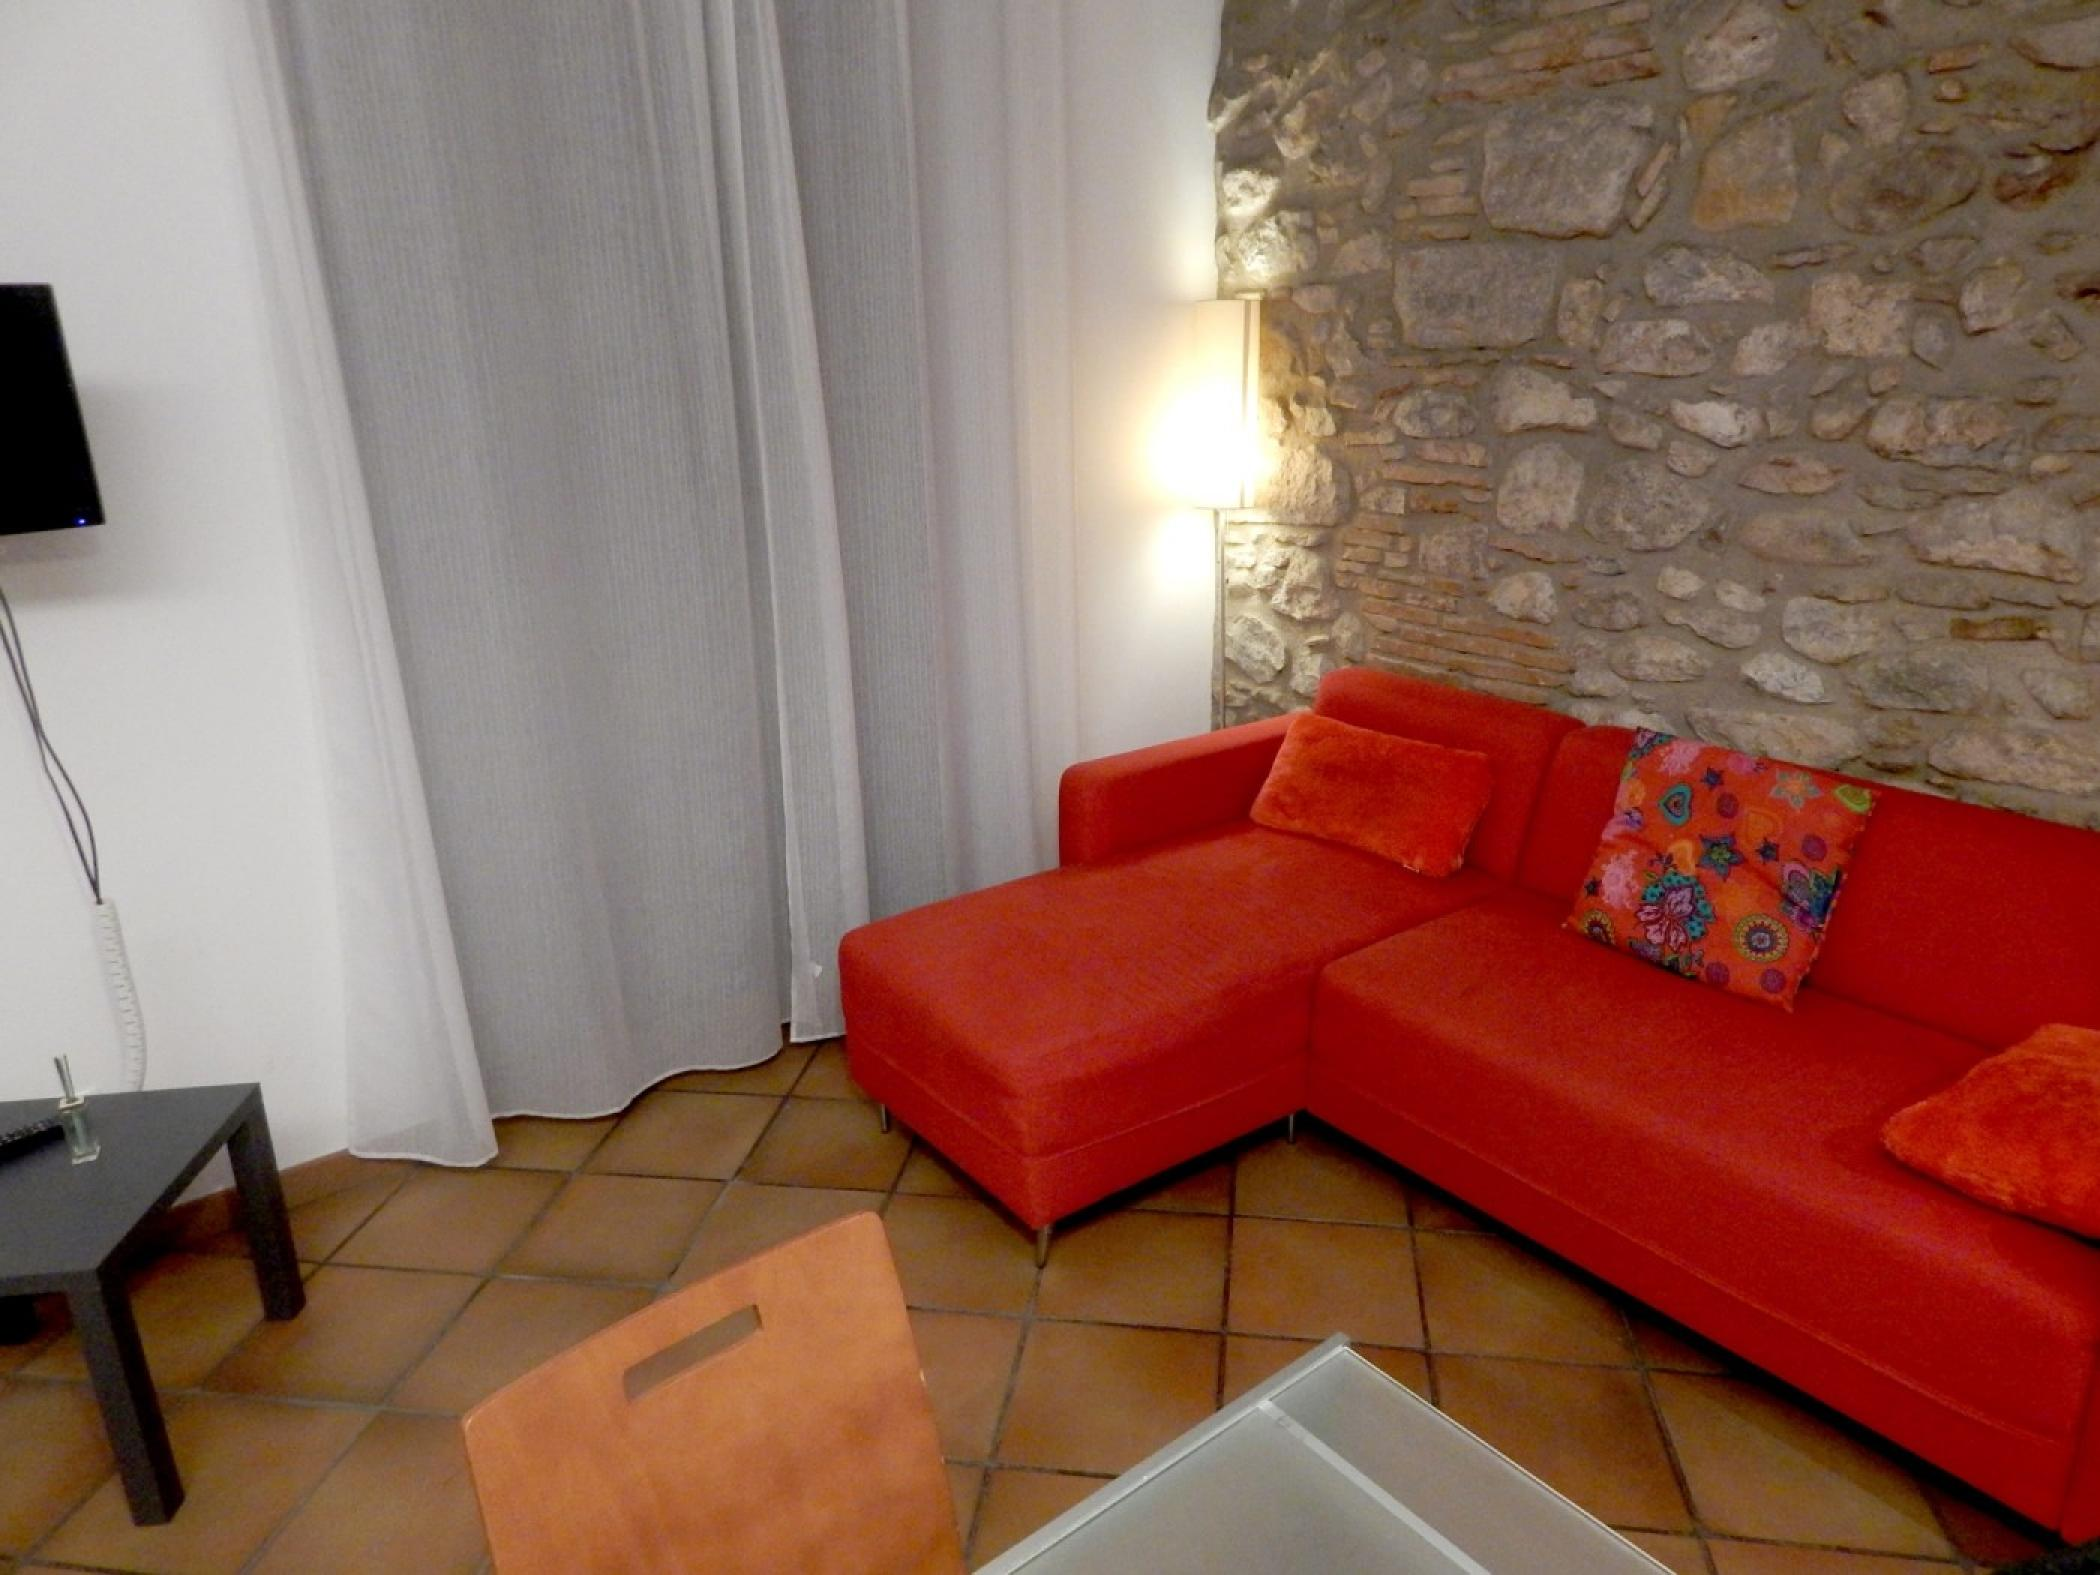 Rent Apartment in Girona - Girona Loft Muralla 2 - 5